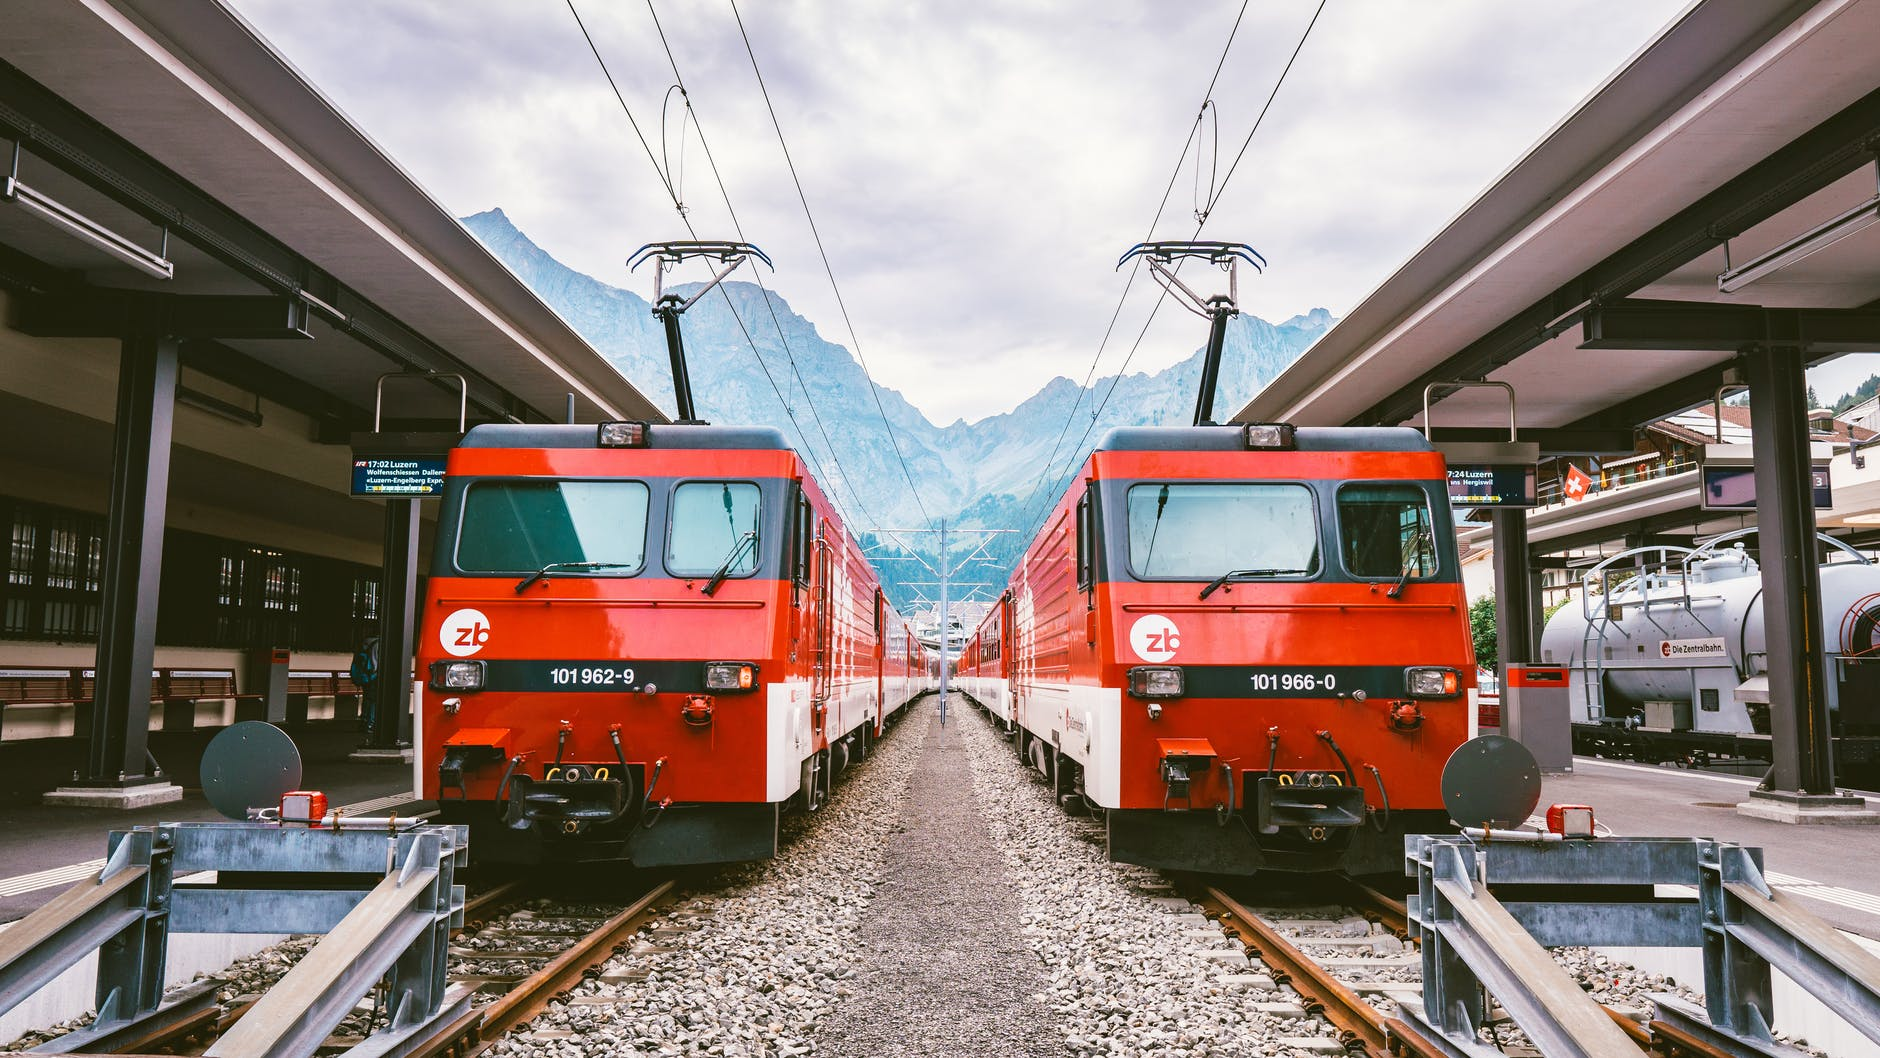 photo of two red trains